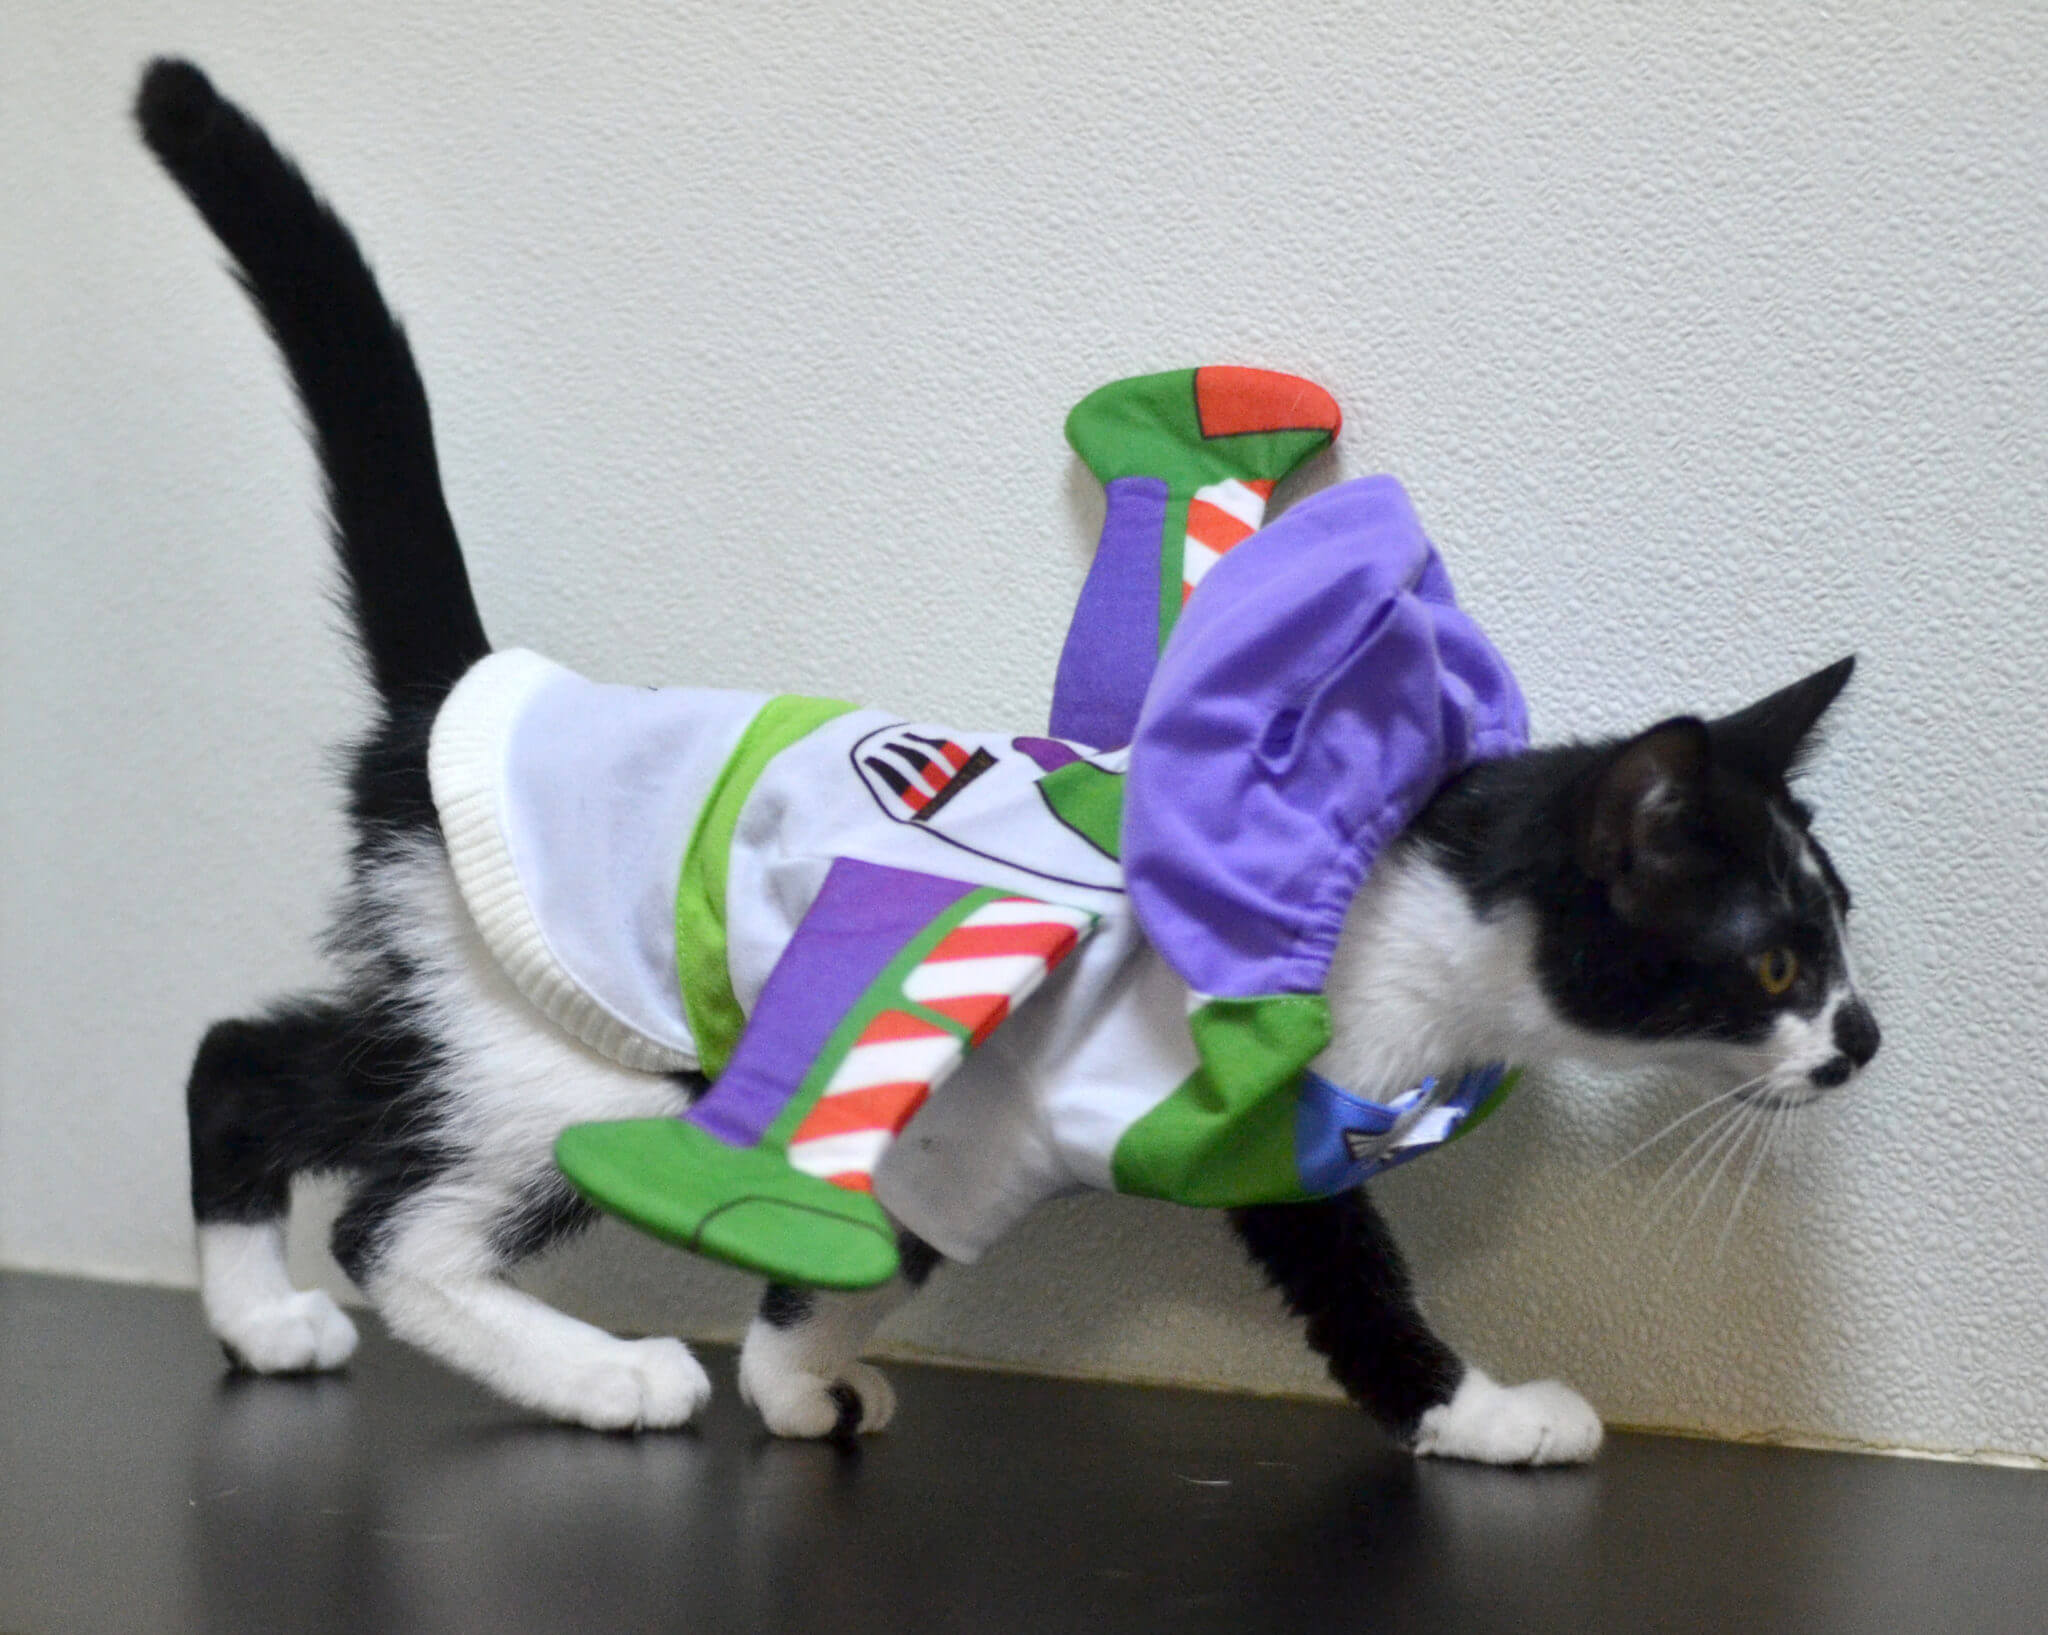 Spirit, the kitten, is a very tolerant guy. He was purring the whole time that he was wearing his Buzz Lightyear costume!